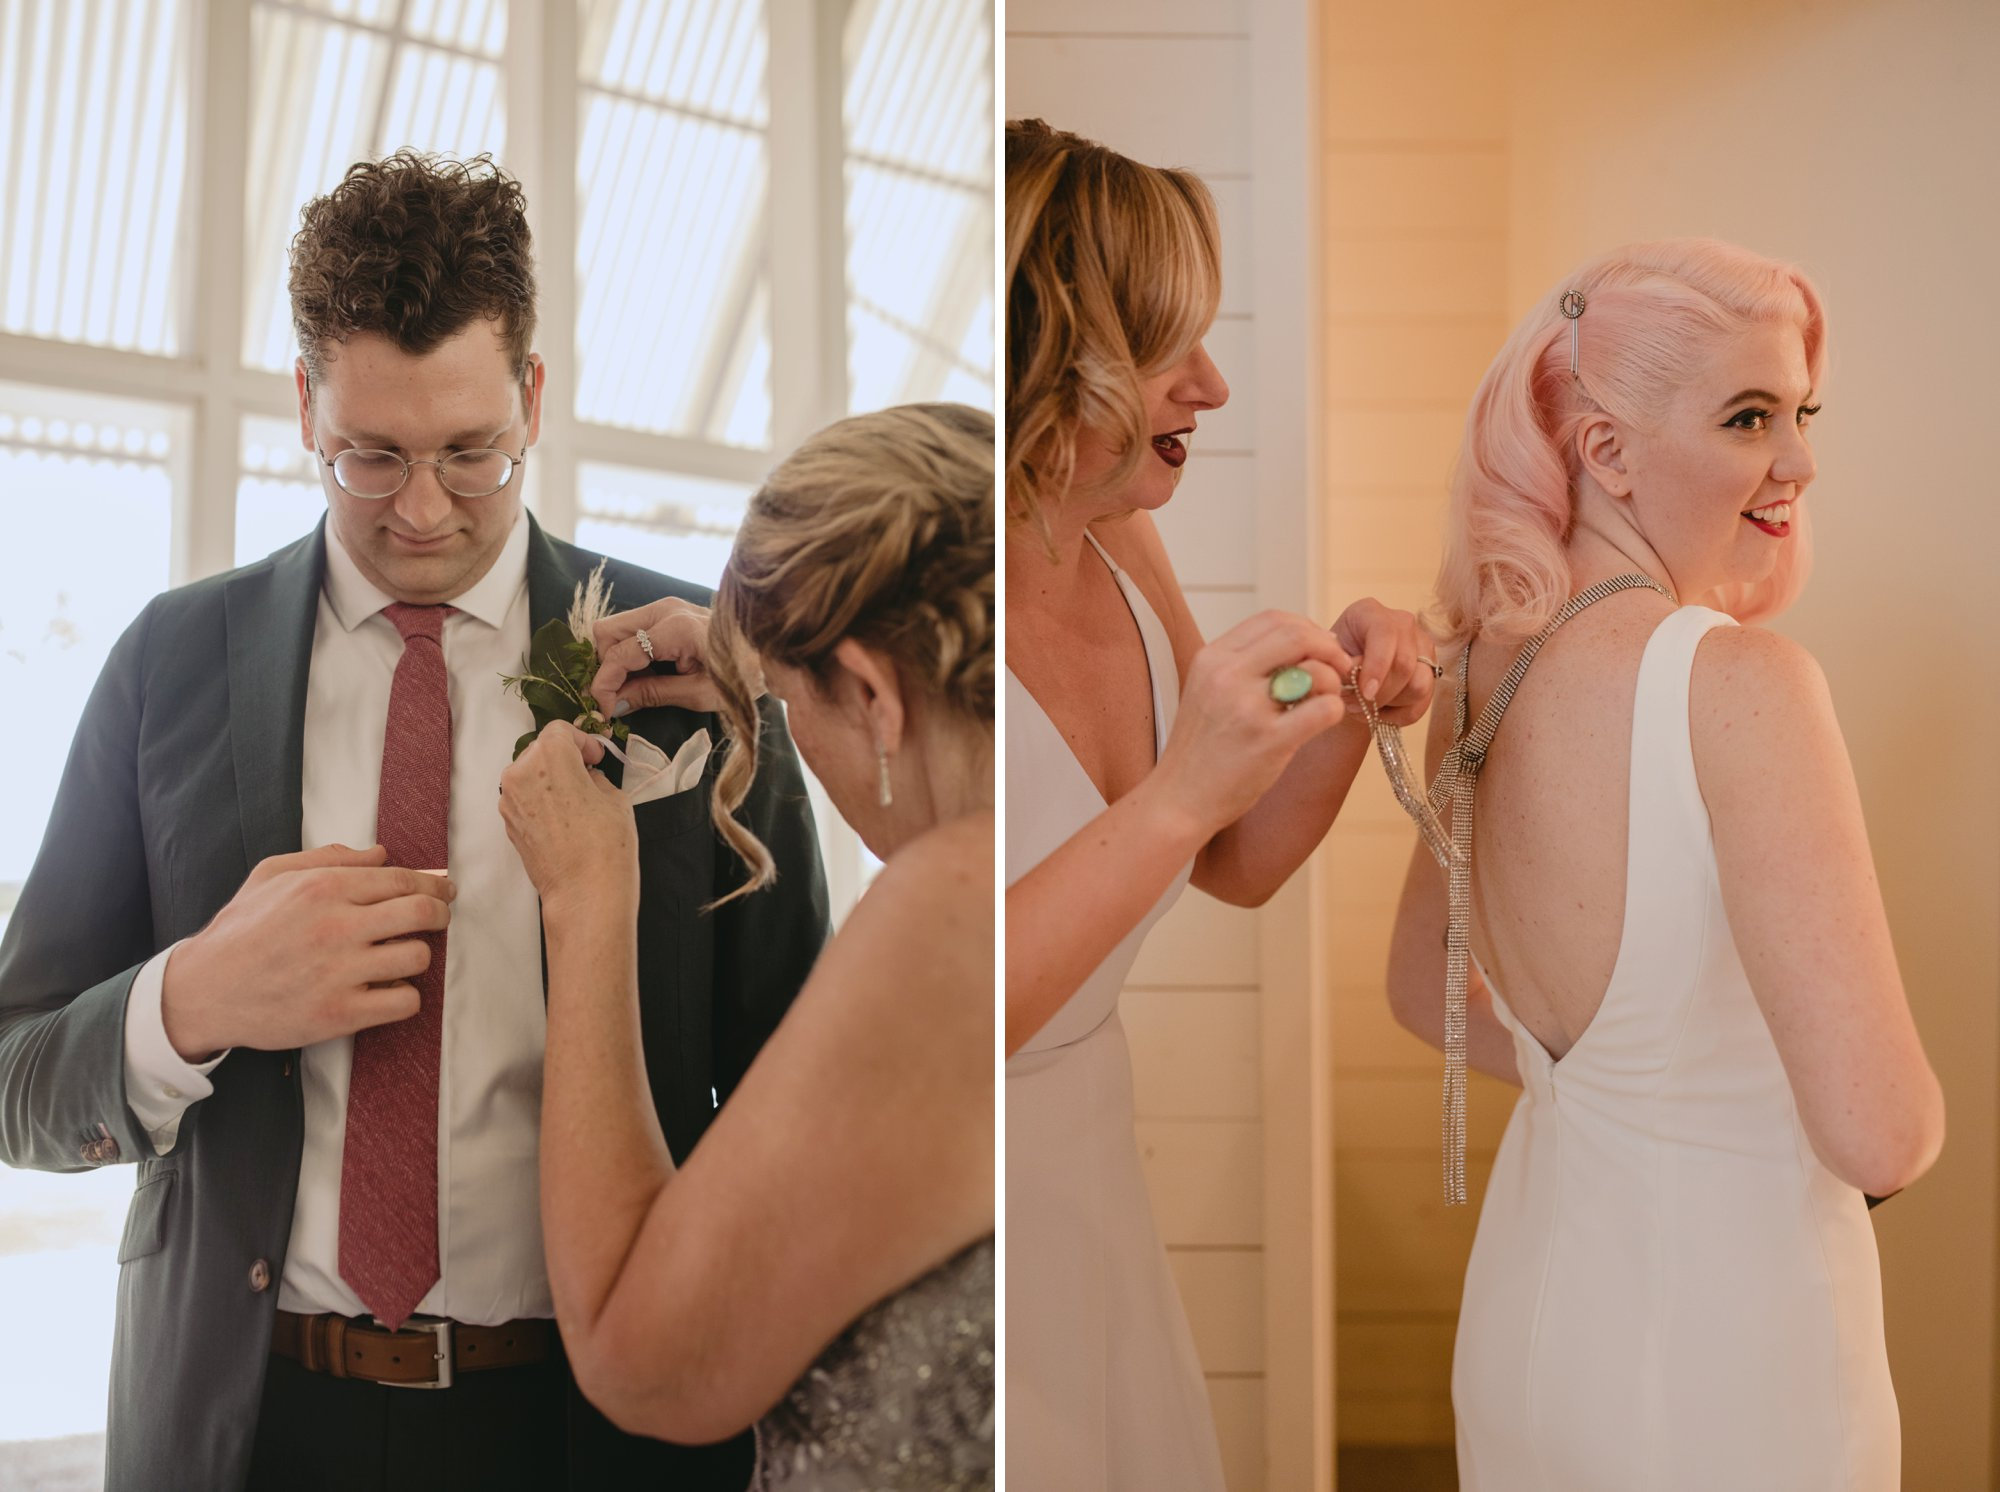 Bride with pink hair and groom in a purple suit prospect house wedding in austin tx with pastel decor and wild florals getting ready